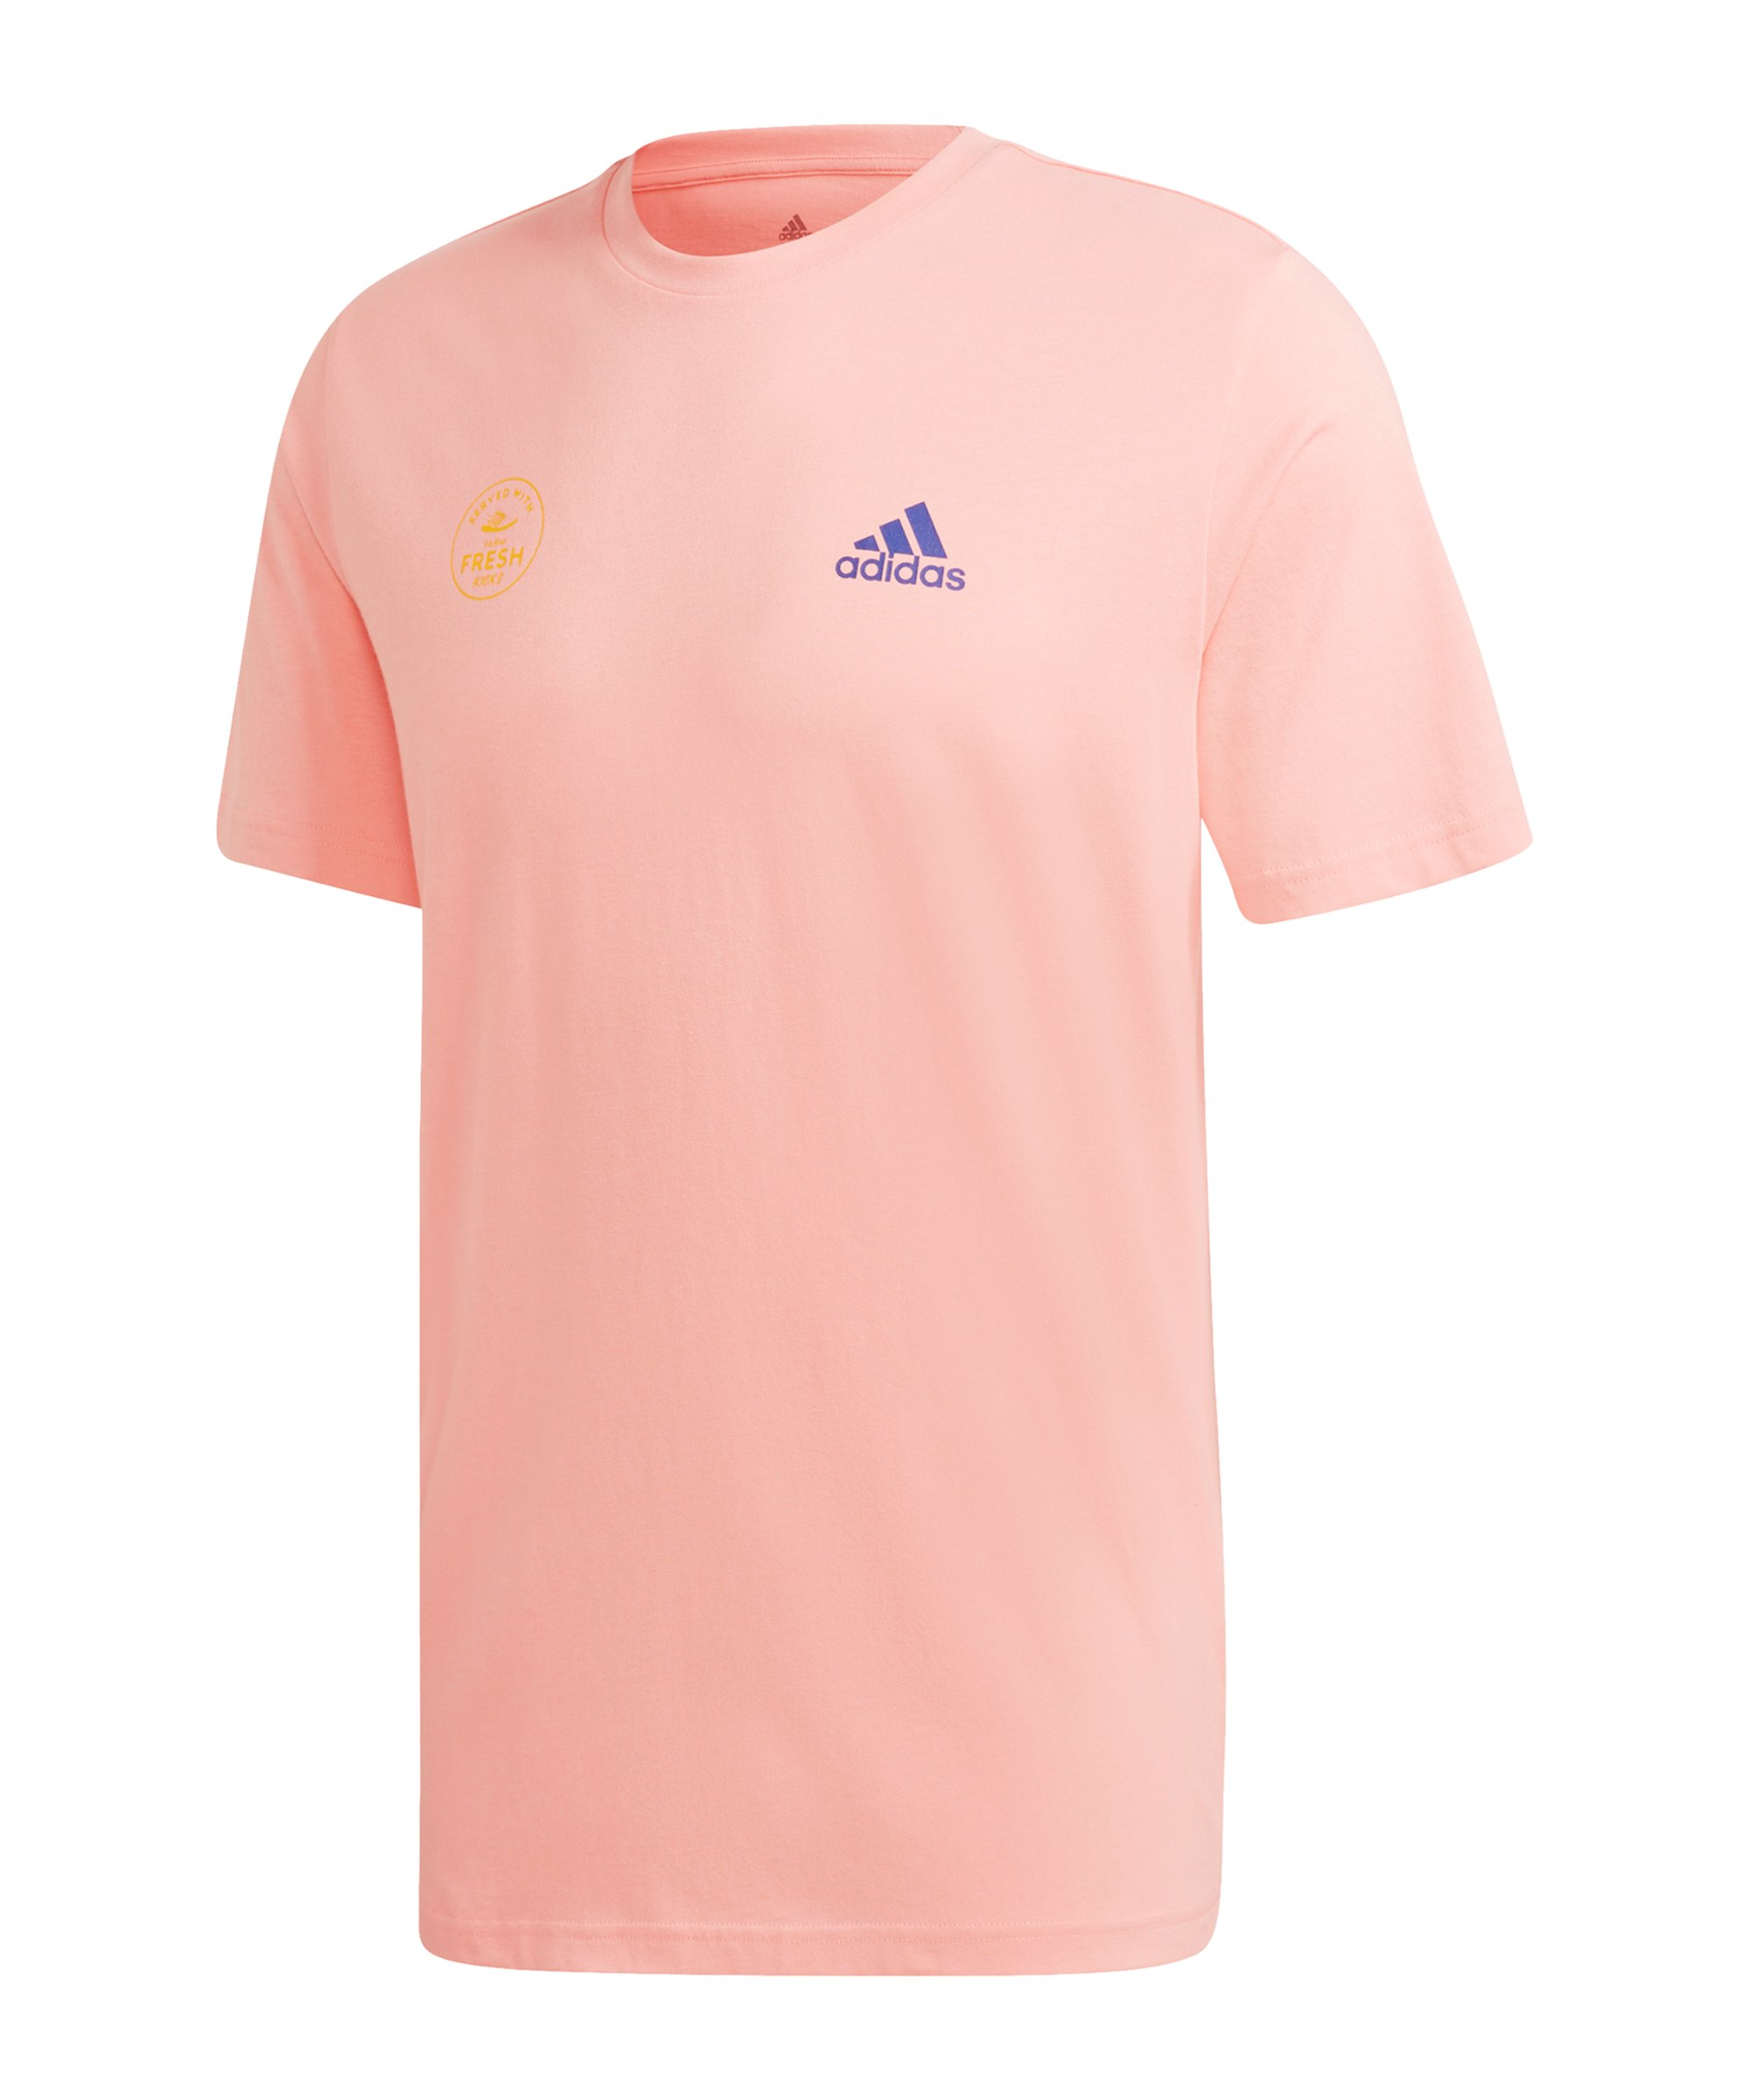 adidas Snack Photo Graphic T-Shirt Pink - pink